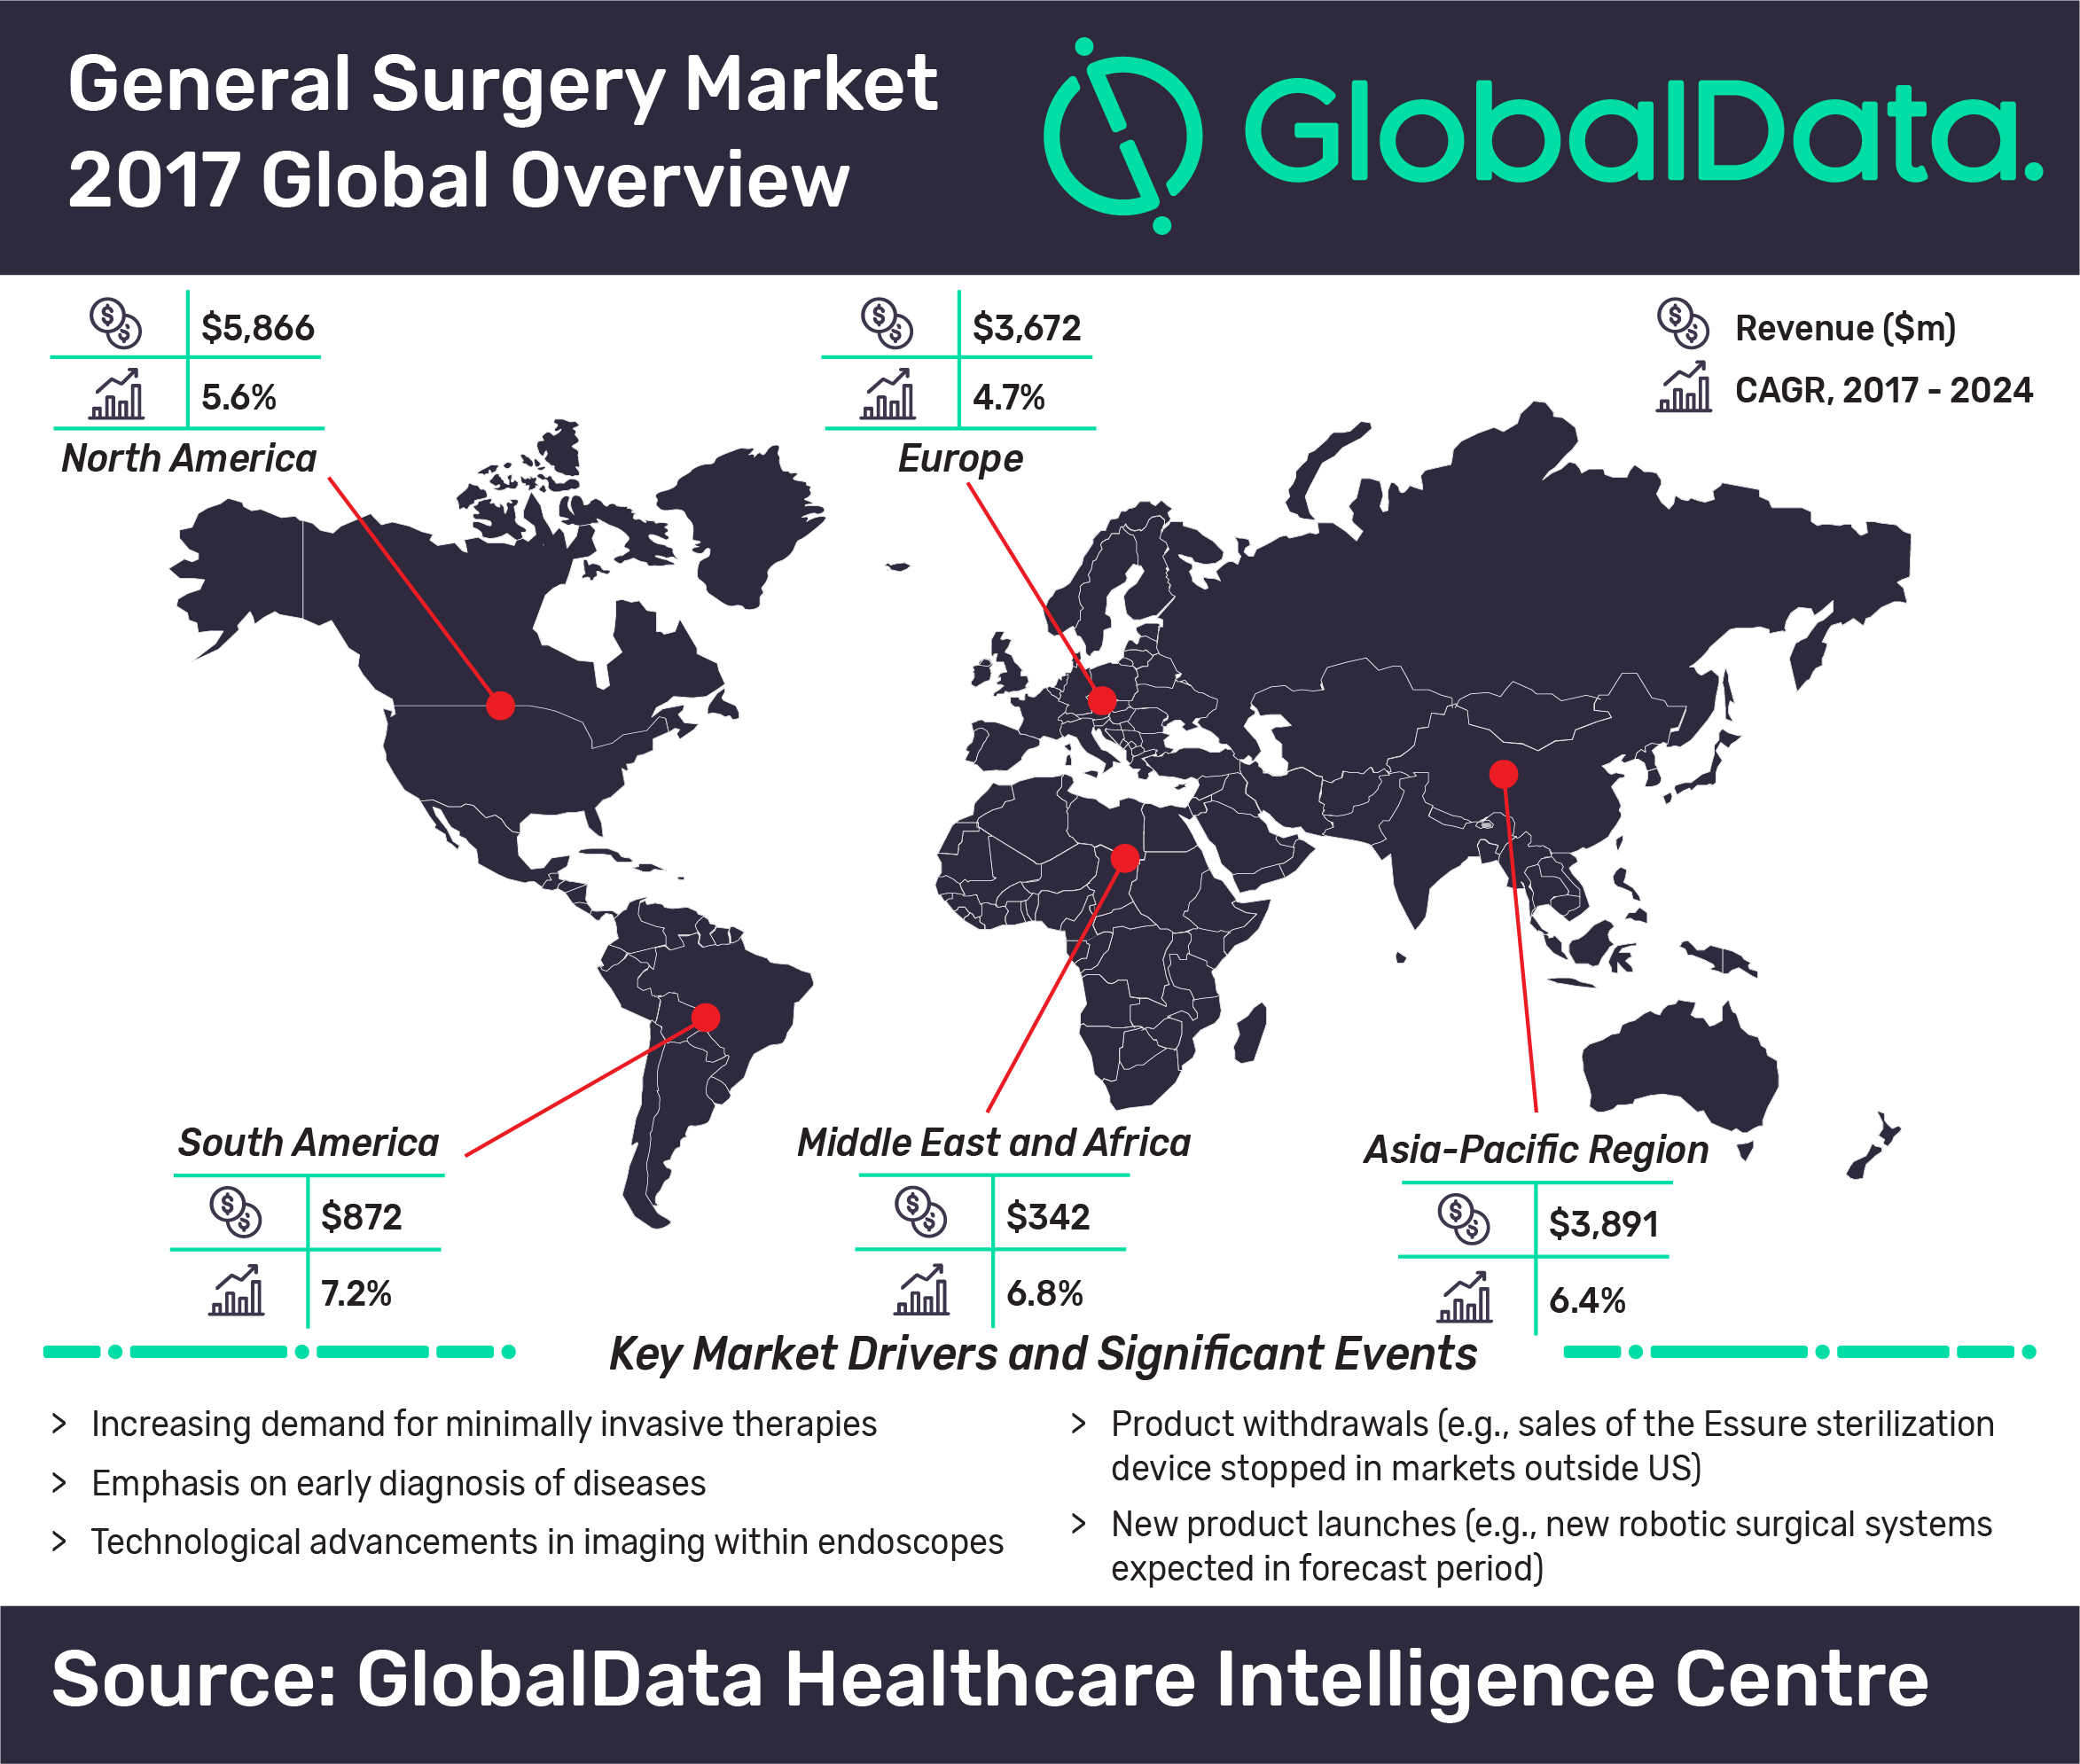 General surgery market is set to reach $21 6bn by 2024 - GlobalData